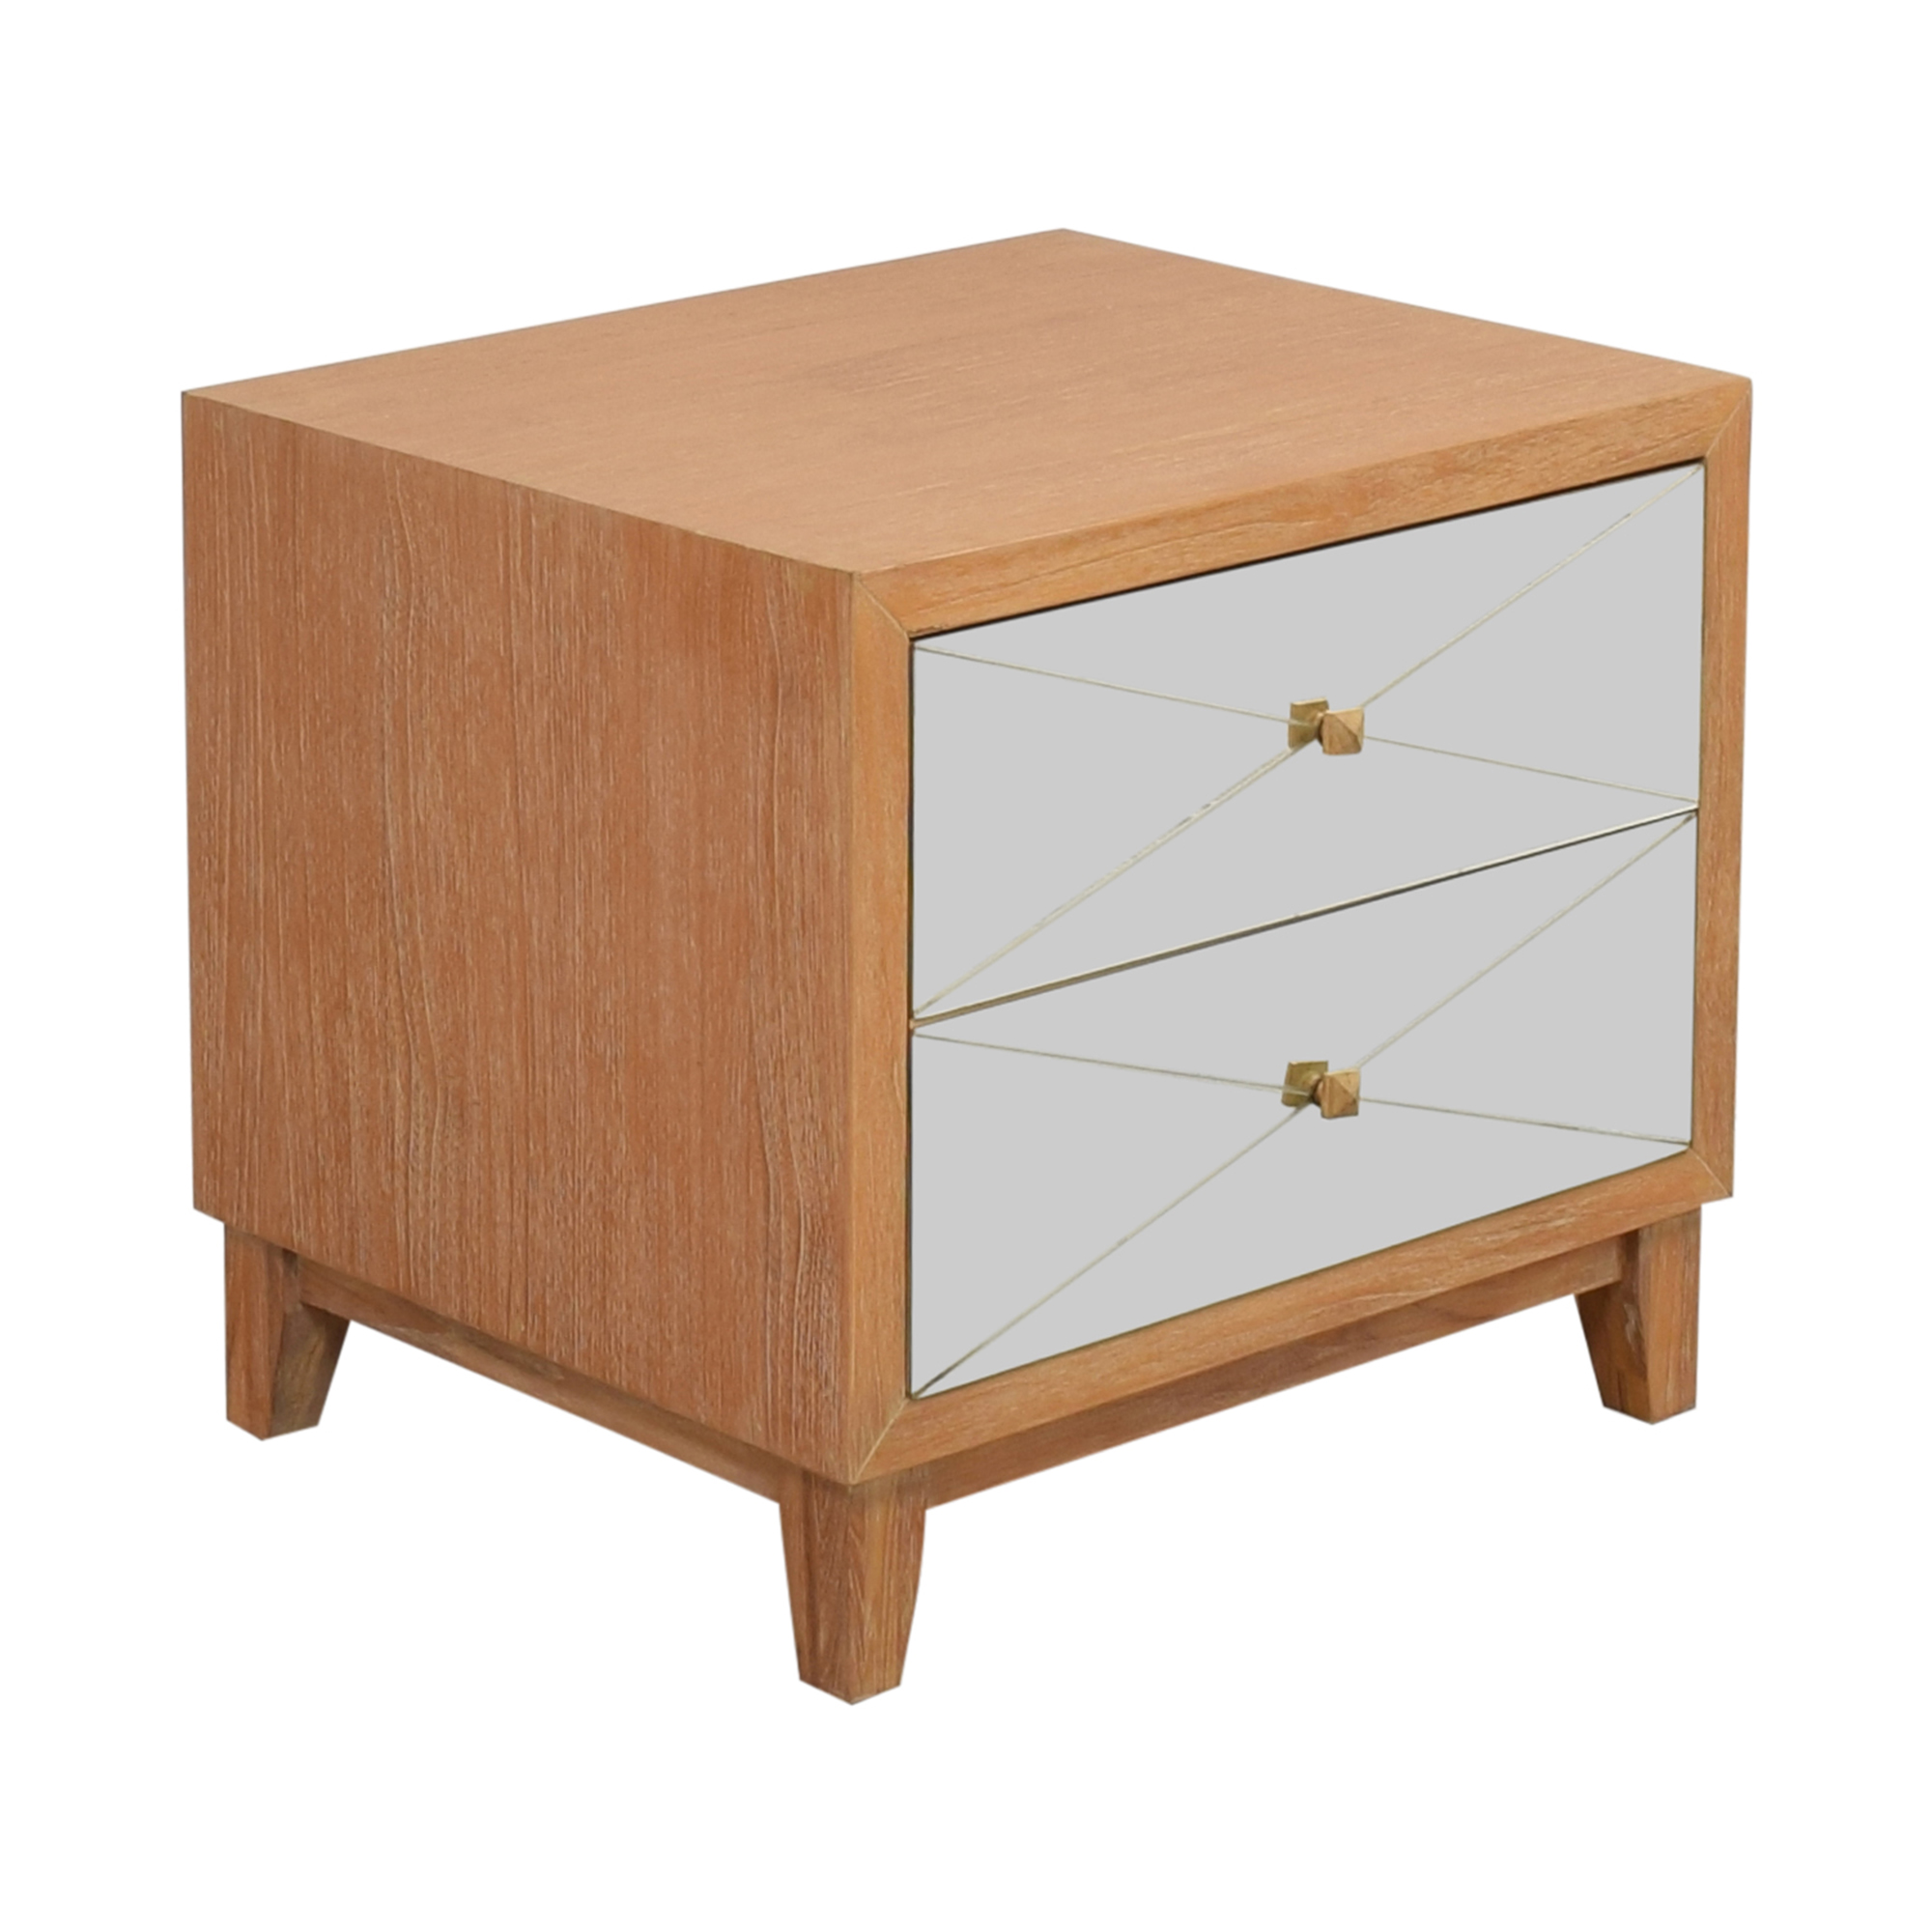 Brownstone Furniture Mirrored Nightstand sale